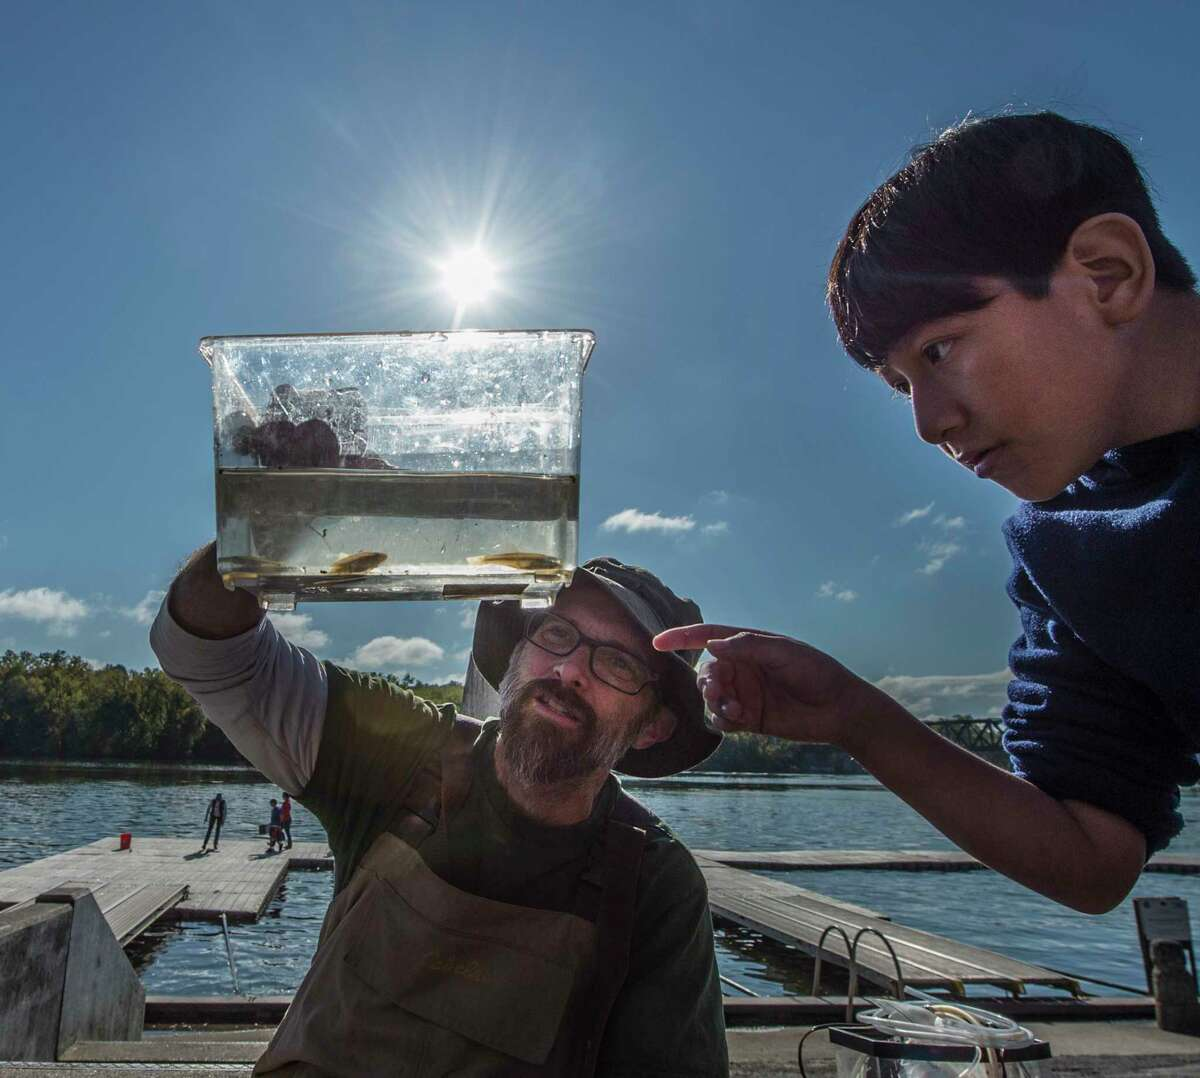 """Sean Madden, of the DEC works with student Edwin Caquana Lemi, 9, as they identify fish caught in the Hudson River and were joined by other students from the Albany Montessori Magnet School at the Corning Preserve to become """"scientists for the day"""" in the 15th annual Day in the Life of the Hudson and Harbor Thursday Oct. 12, 2017 in Albany, N.Y. Students up and down the Hudson River spend their time collecting and analyzing real data from the field during hands-on exploration of the Hudson River Estuary. (Skip Dickstein/Times Union)"""